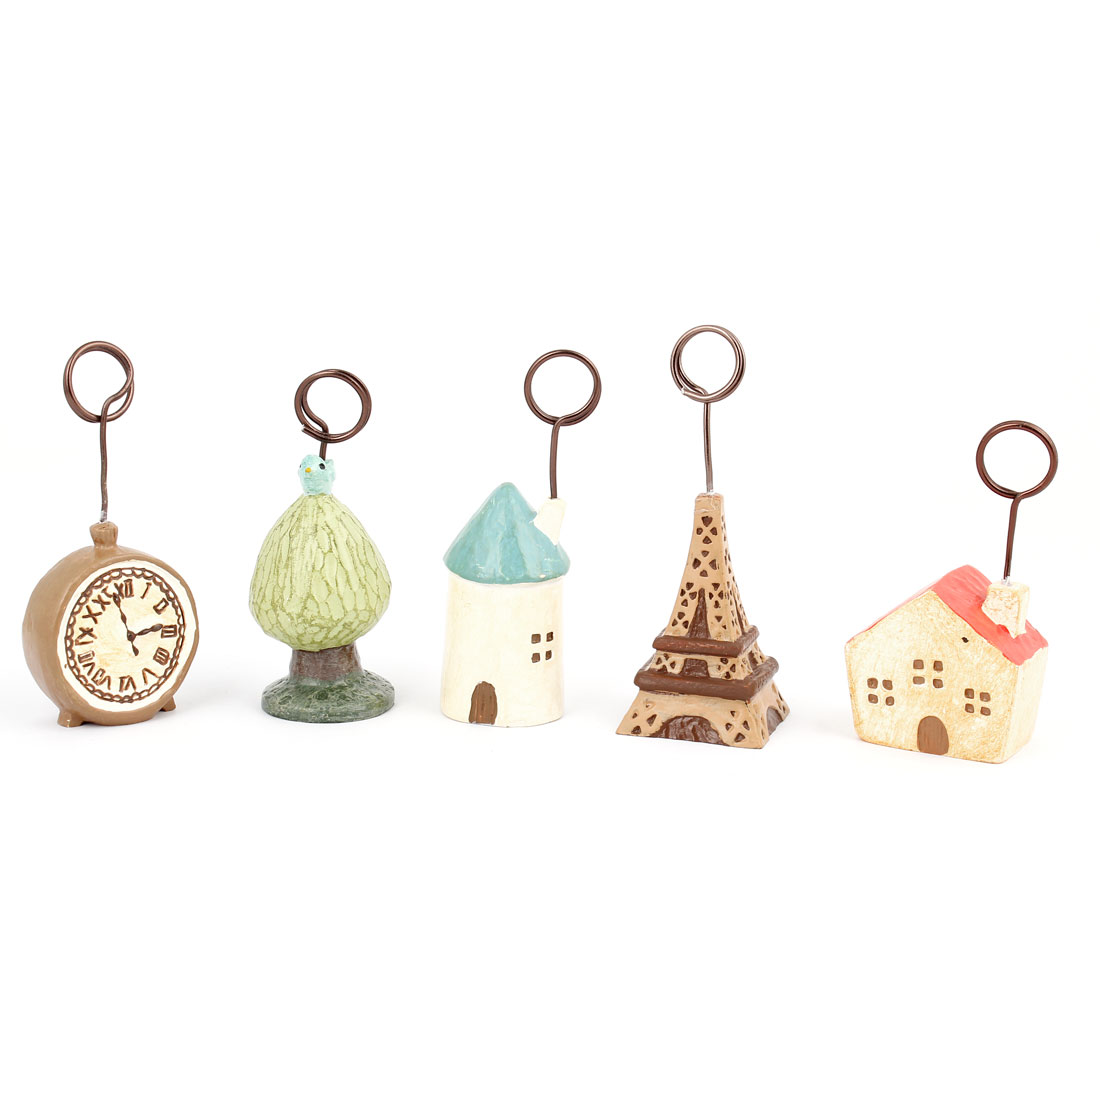 5 Pcs House Clock Tree Tower Shaped Photo Memo Clip Stand Card Display Holder